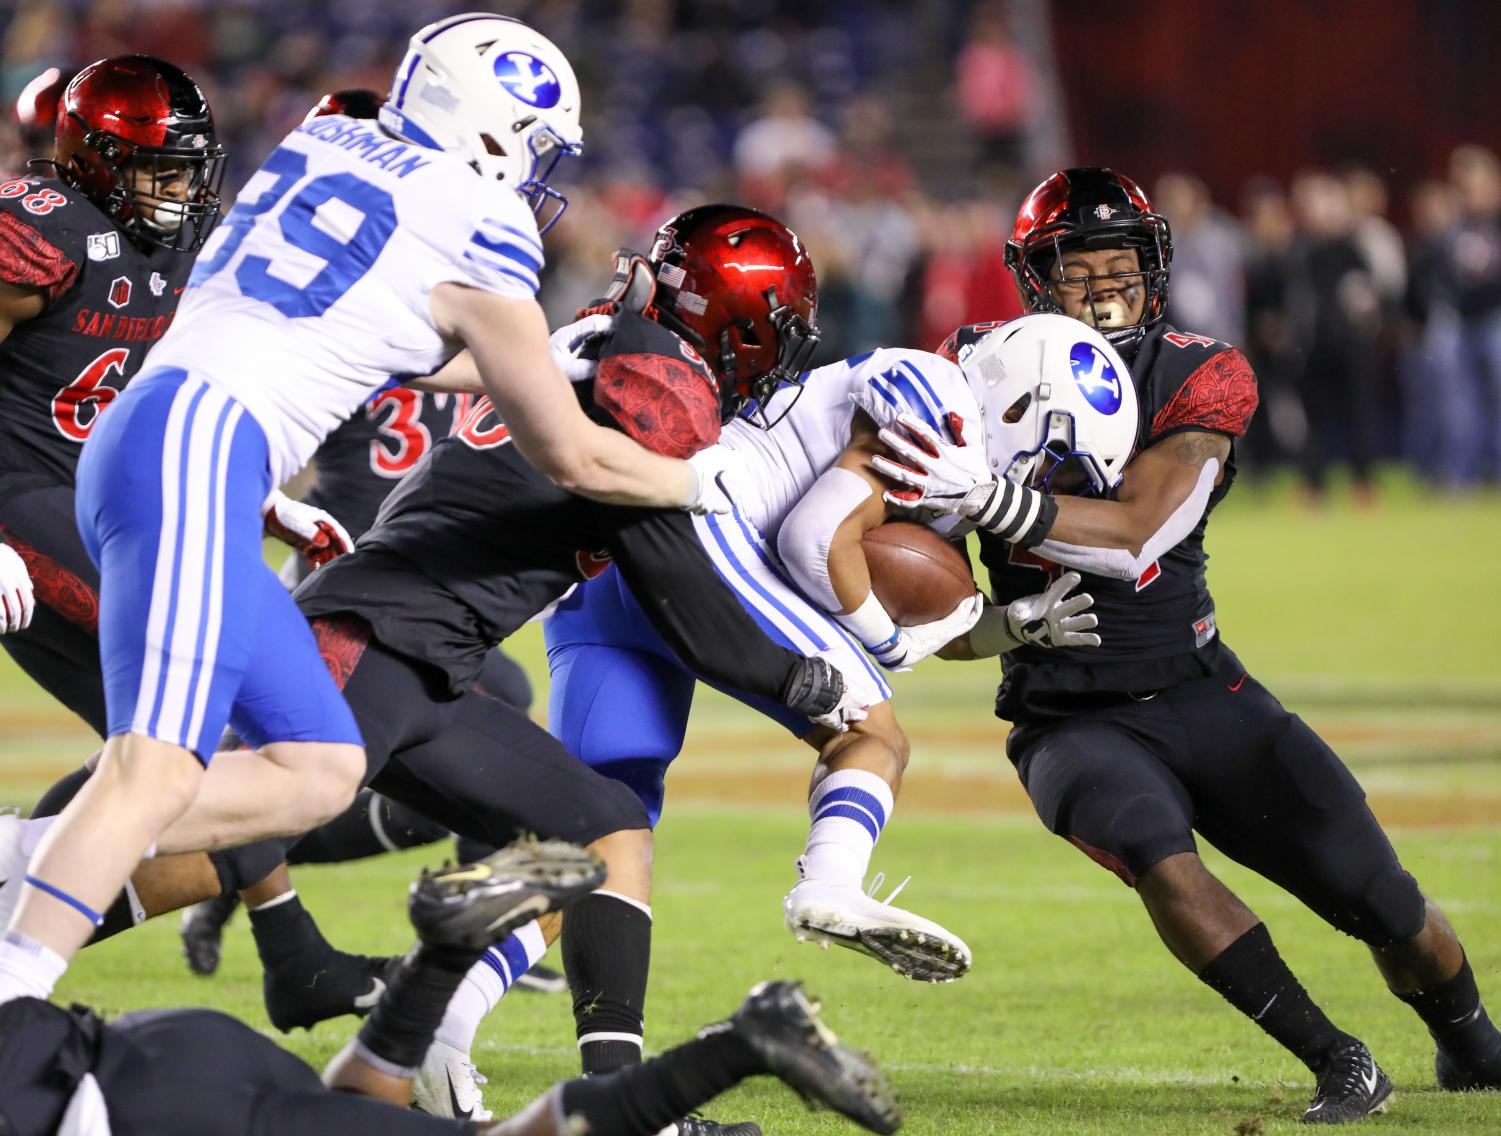 BYU came into the game averaging 42.7 points in its last four games. San Diego State's defense held the Cougars to three points during the Aztecs' 13-3 victory on Nov. 30 at SDCCU Stadium.